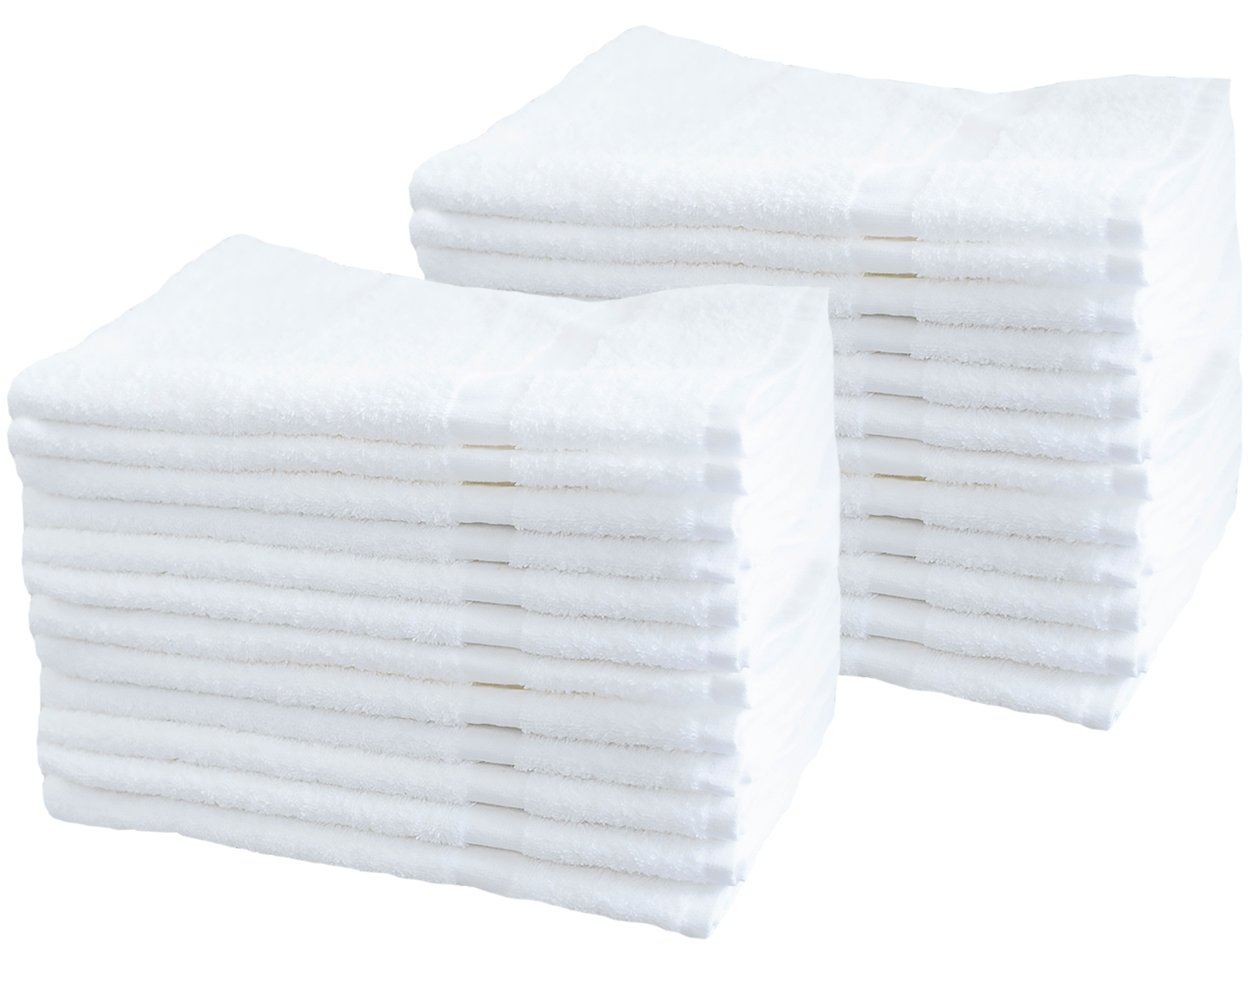 Cotton & Calm Exquisitely Soft Touch Hand Towels (24 Pack, 16 x 27 inches), White - Crafted for Home, Bath, Spa, Salon, Gym, Restaurant